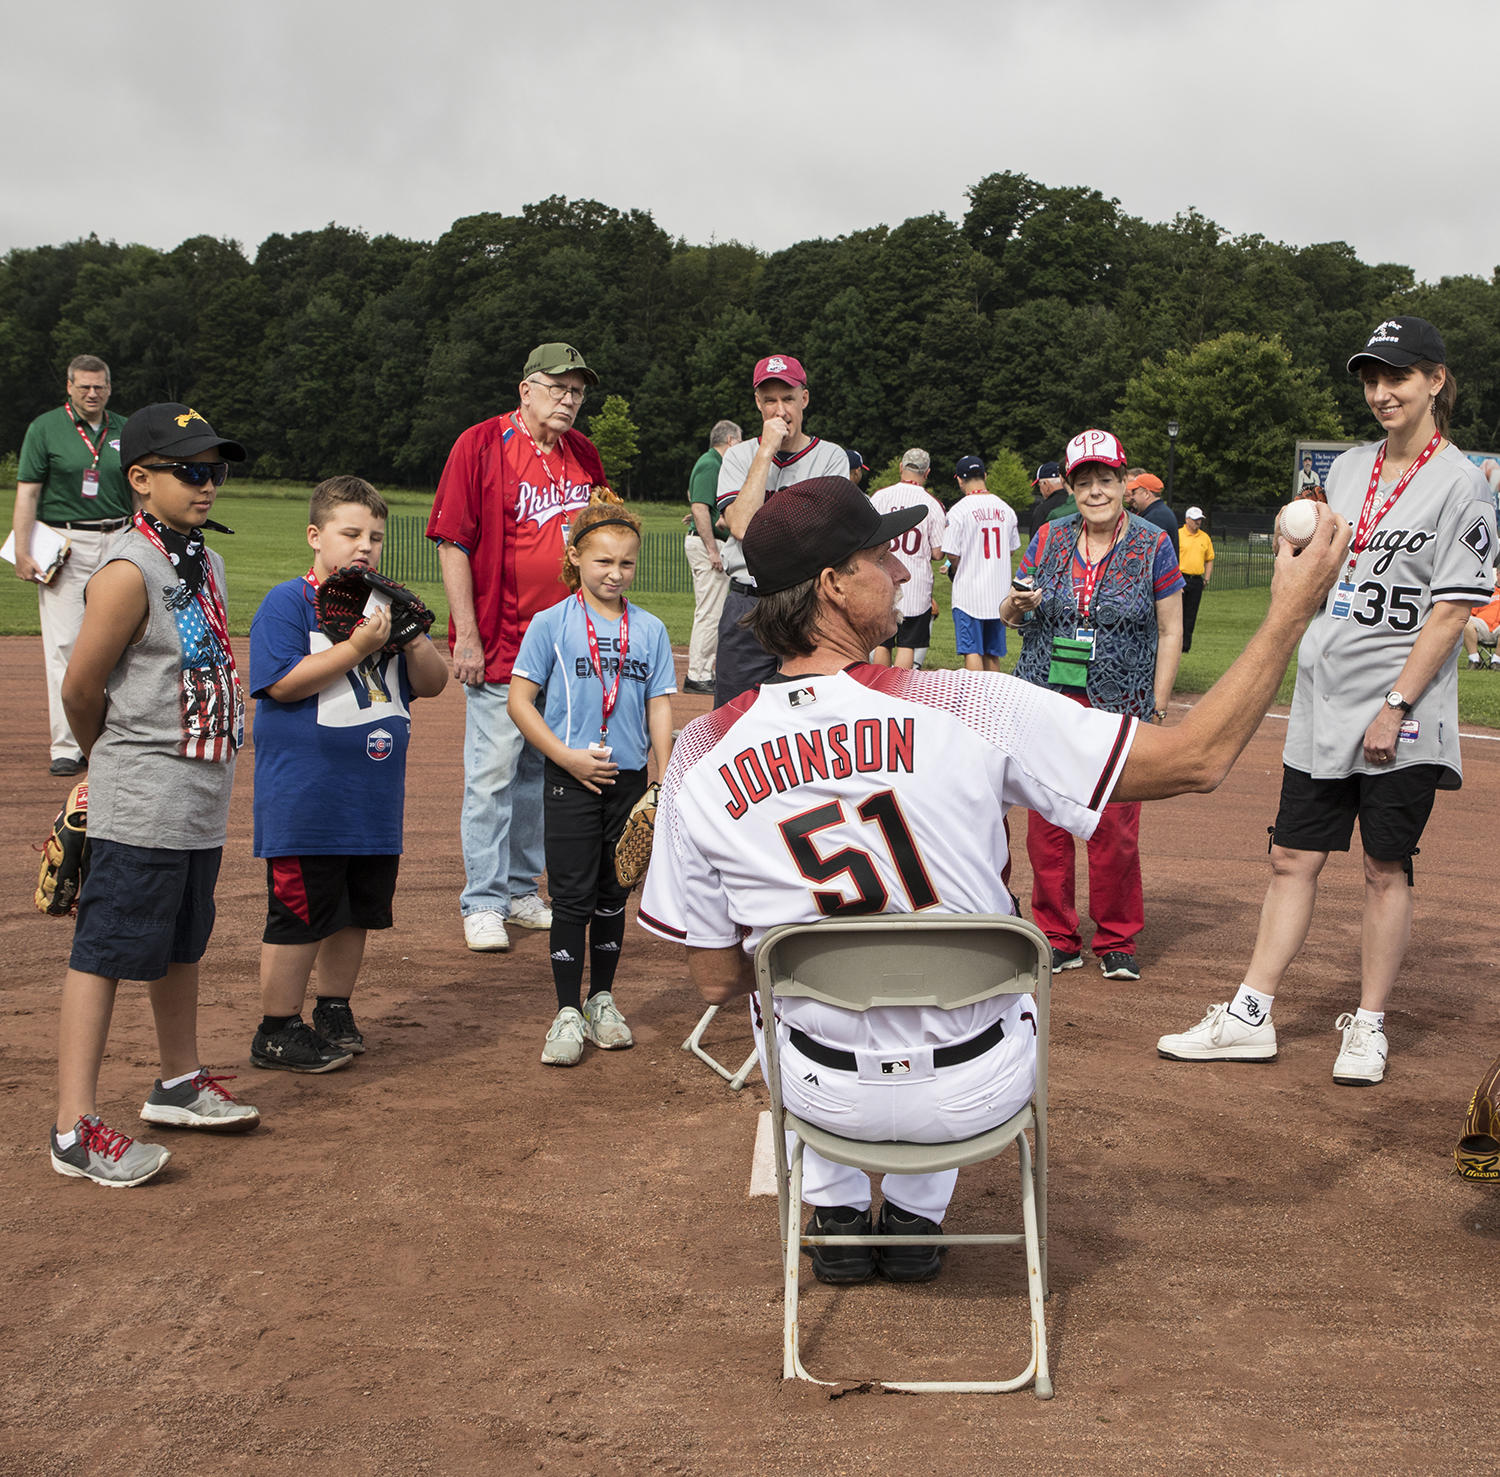 Hall of Famer Randy Johnson gives some pitching pointers to Museum supporters at the 2017 PLAY Ball event in Cooperstown. (By Photographer Milo Stewart Jr./National Baseball Hall of Fame and Museum)